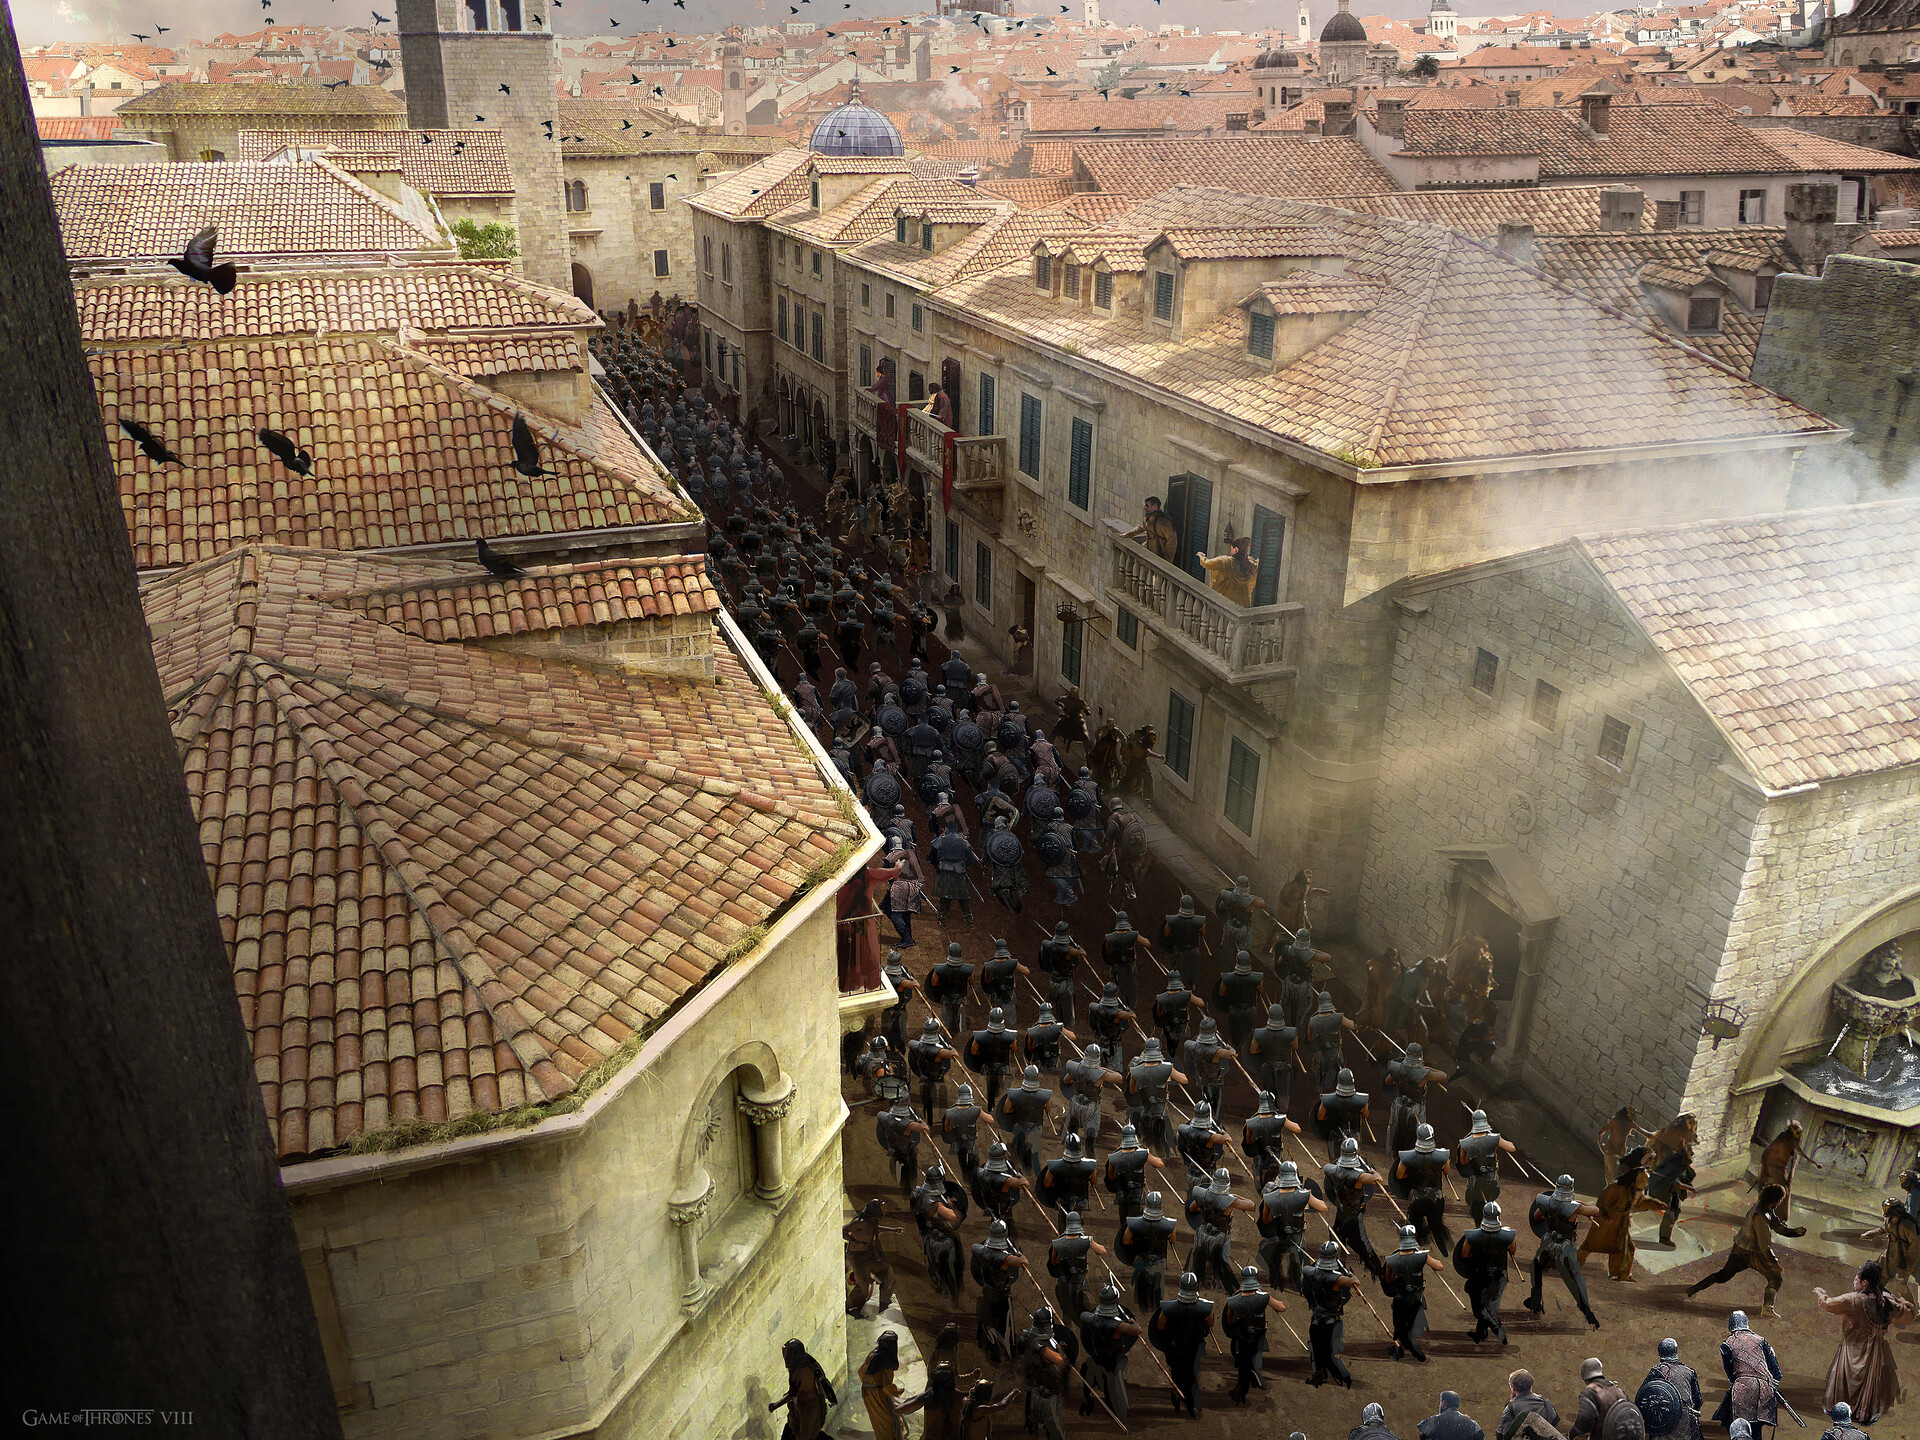 Concept to show Unsullied and Northern troops entering Kings Landing